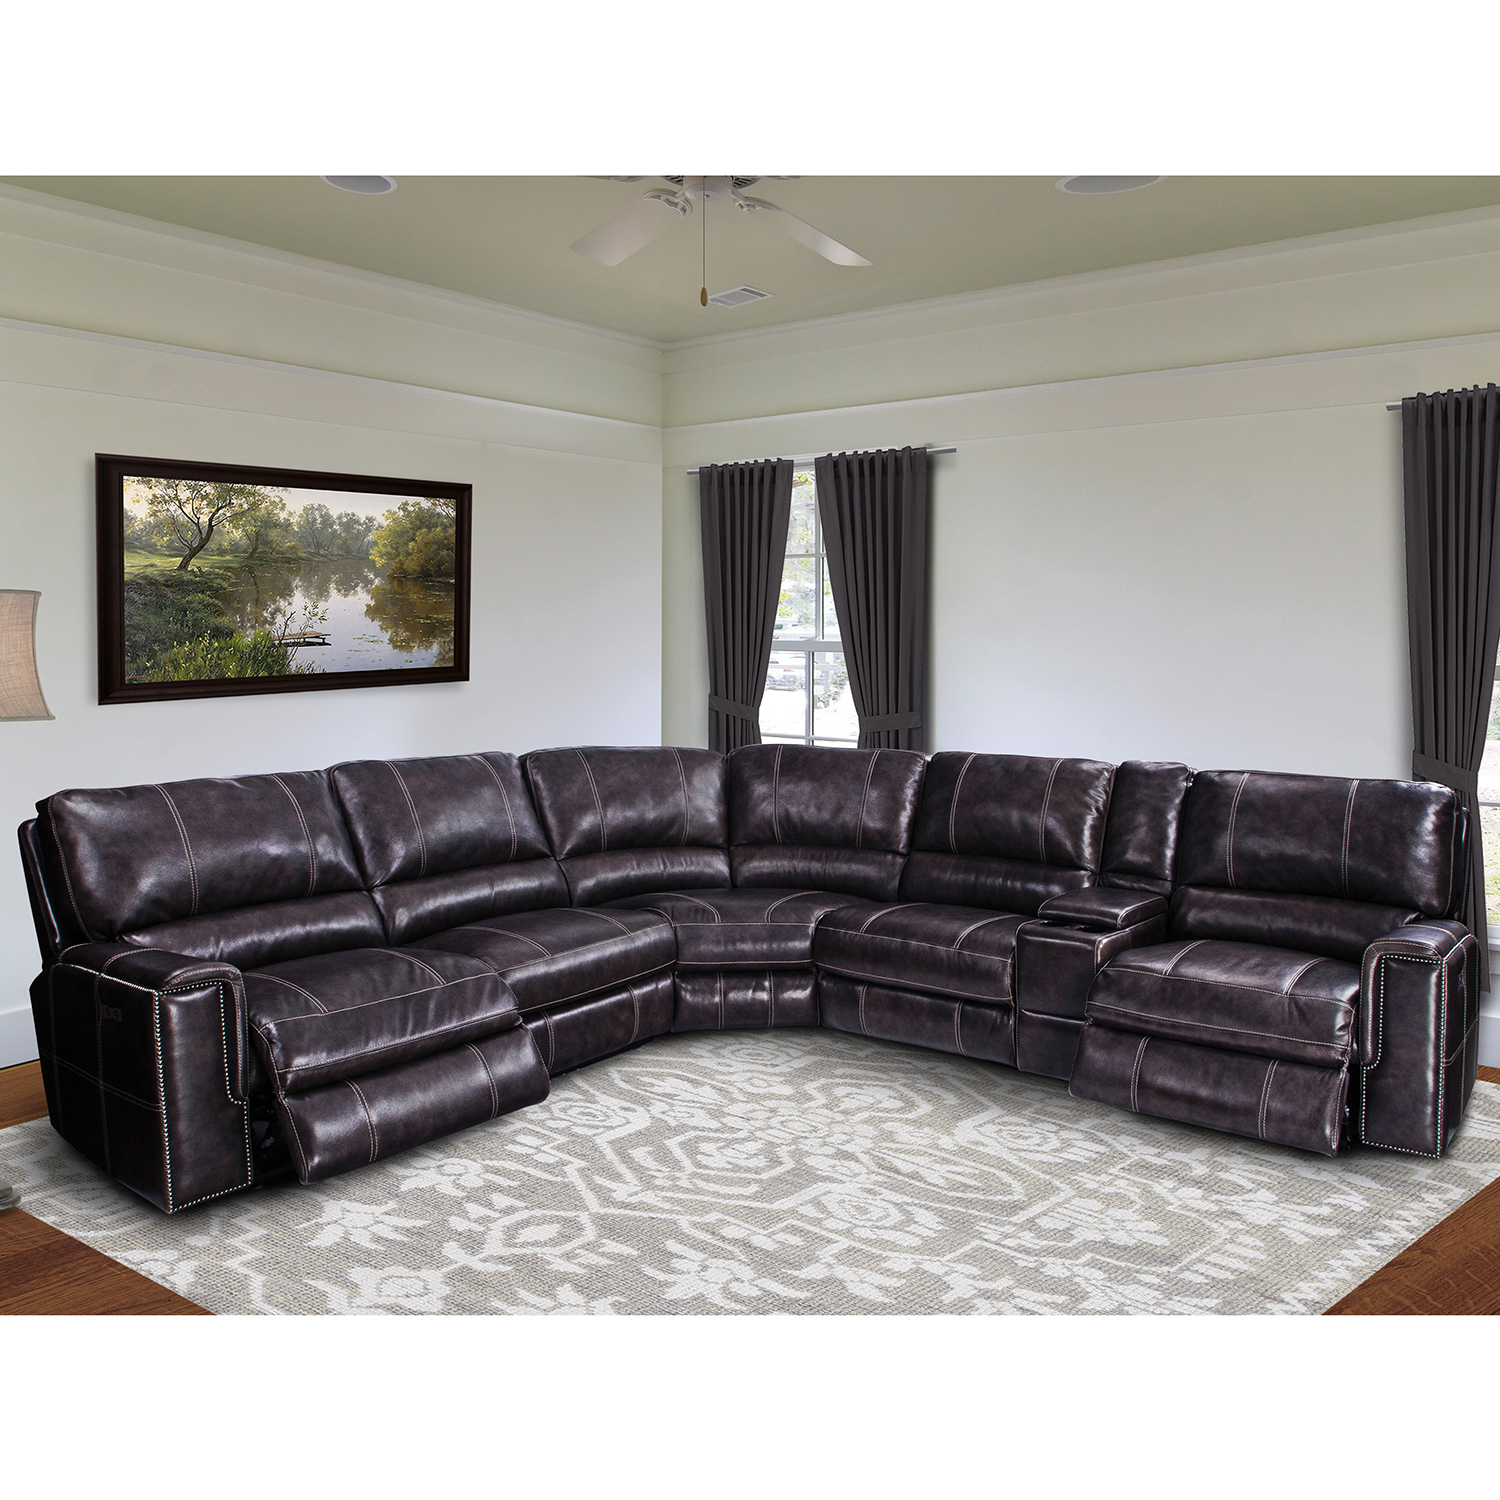 Parker House MSAL 6PC SECTIONAL Salinger 6 Piece Sectional Sofa in